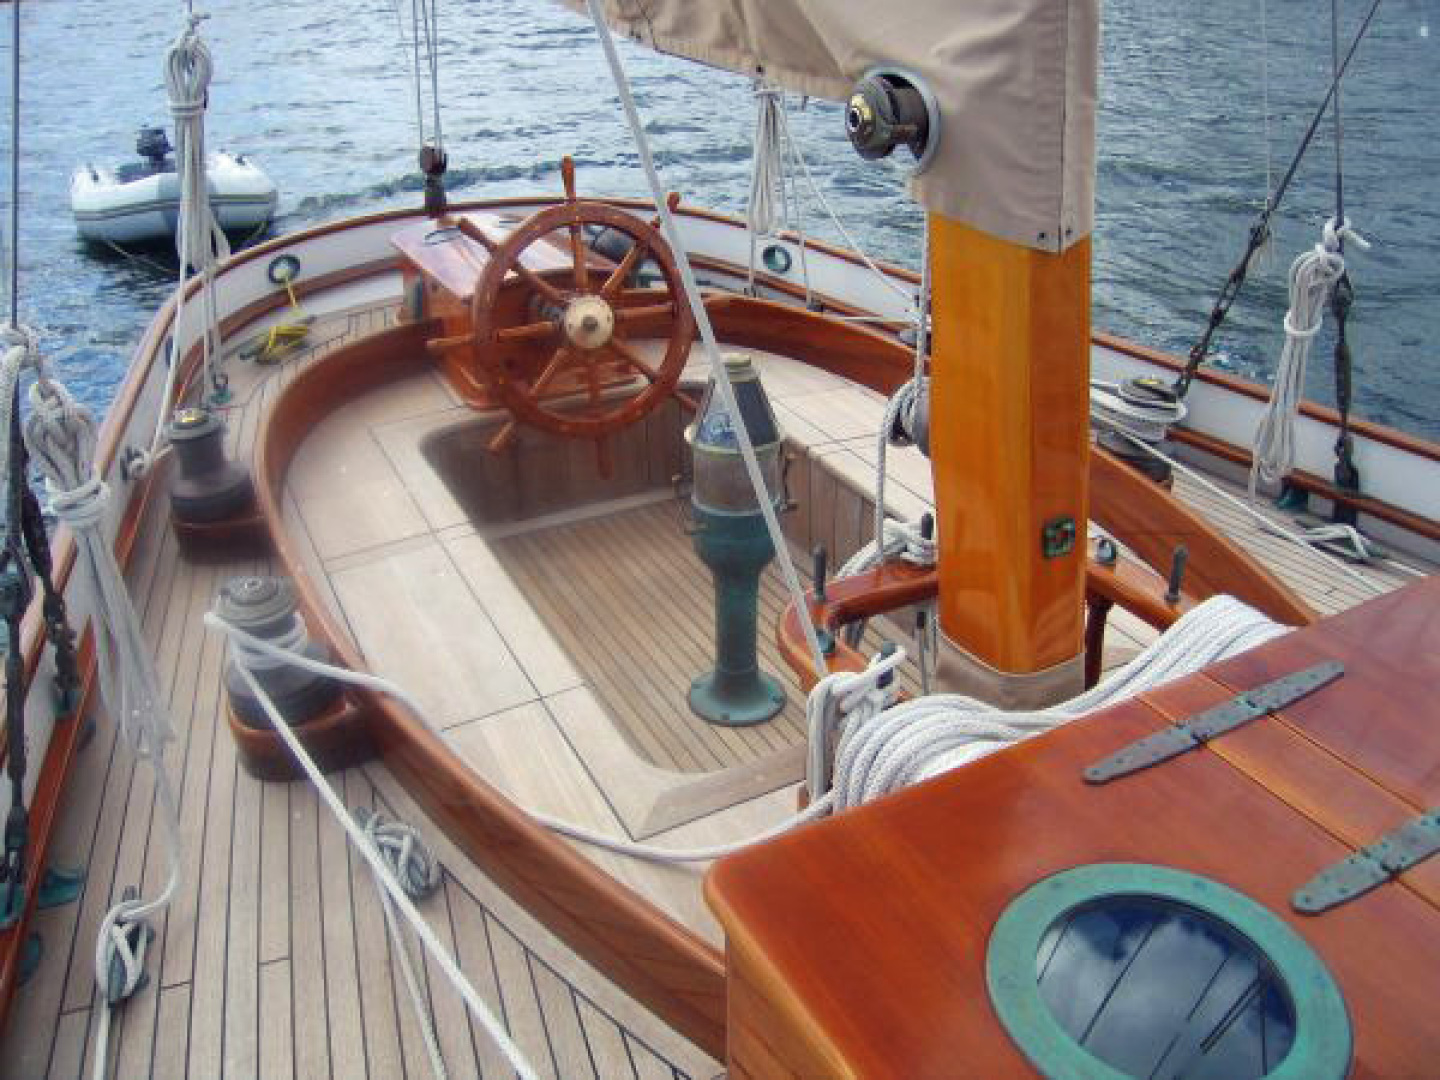 Herreshoff-Bounty 58 2004-CATRIONA Mattapoisett-Massachusetts-United States-Cockpit-1560597 | Thumbnail